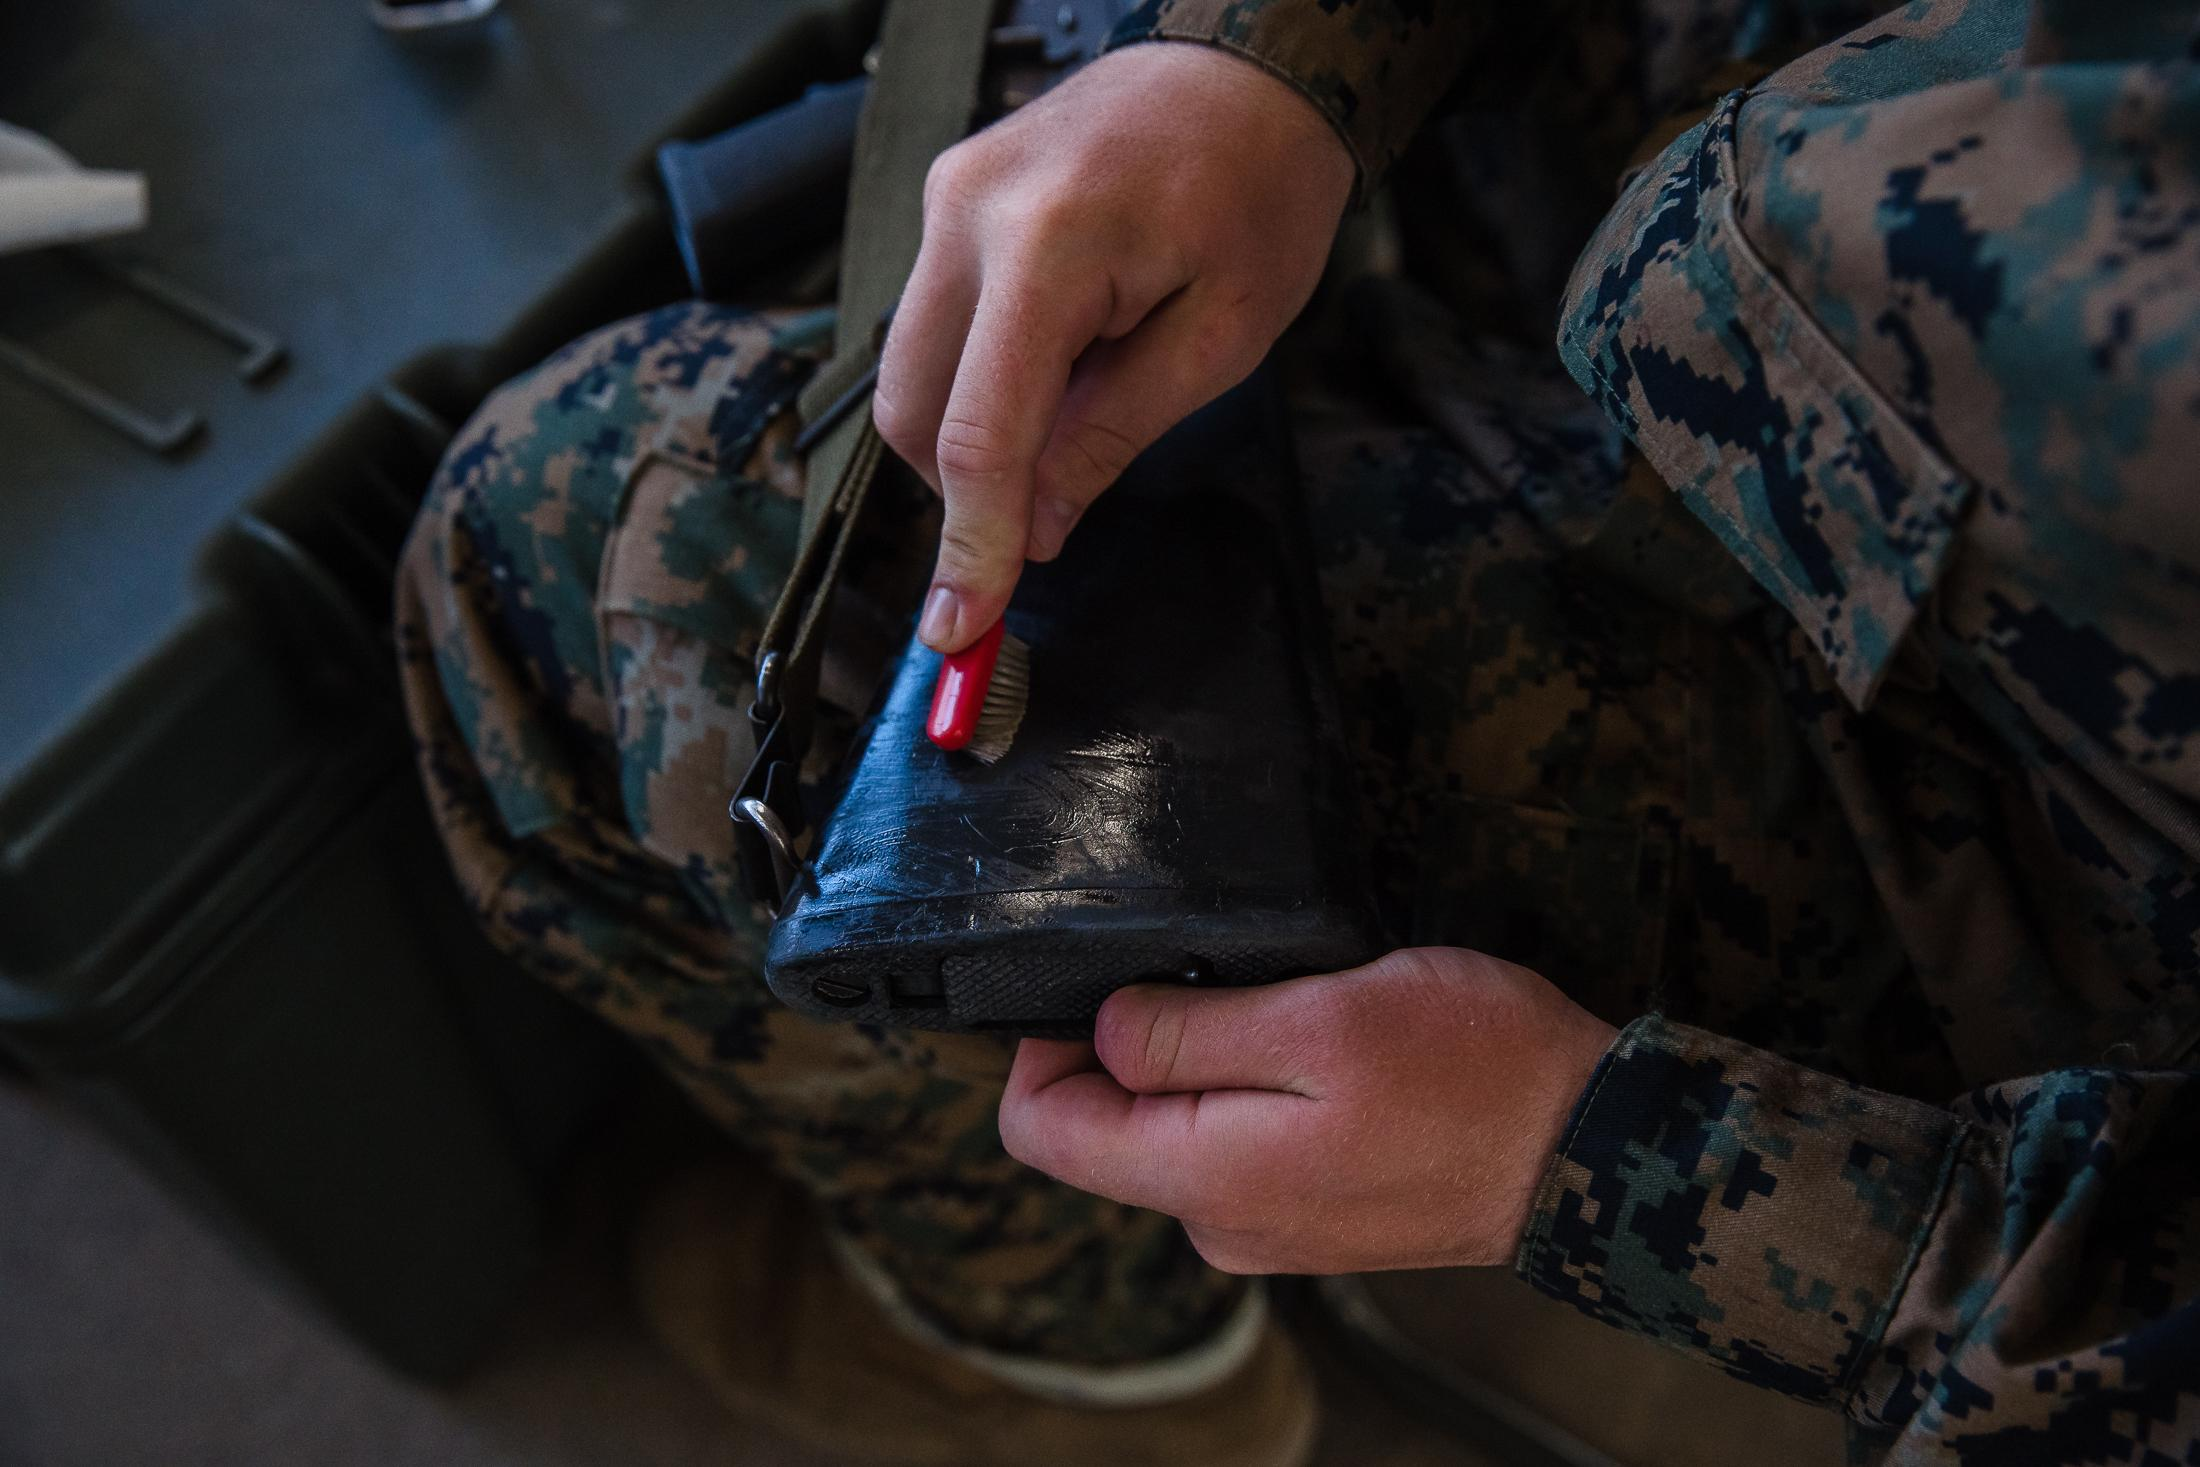 A young recruit cleans his gun inside the barracks using a toothbrush at the Marine Corps Recruit Depot.